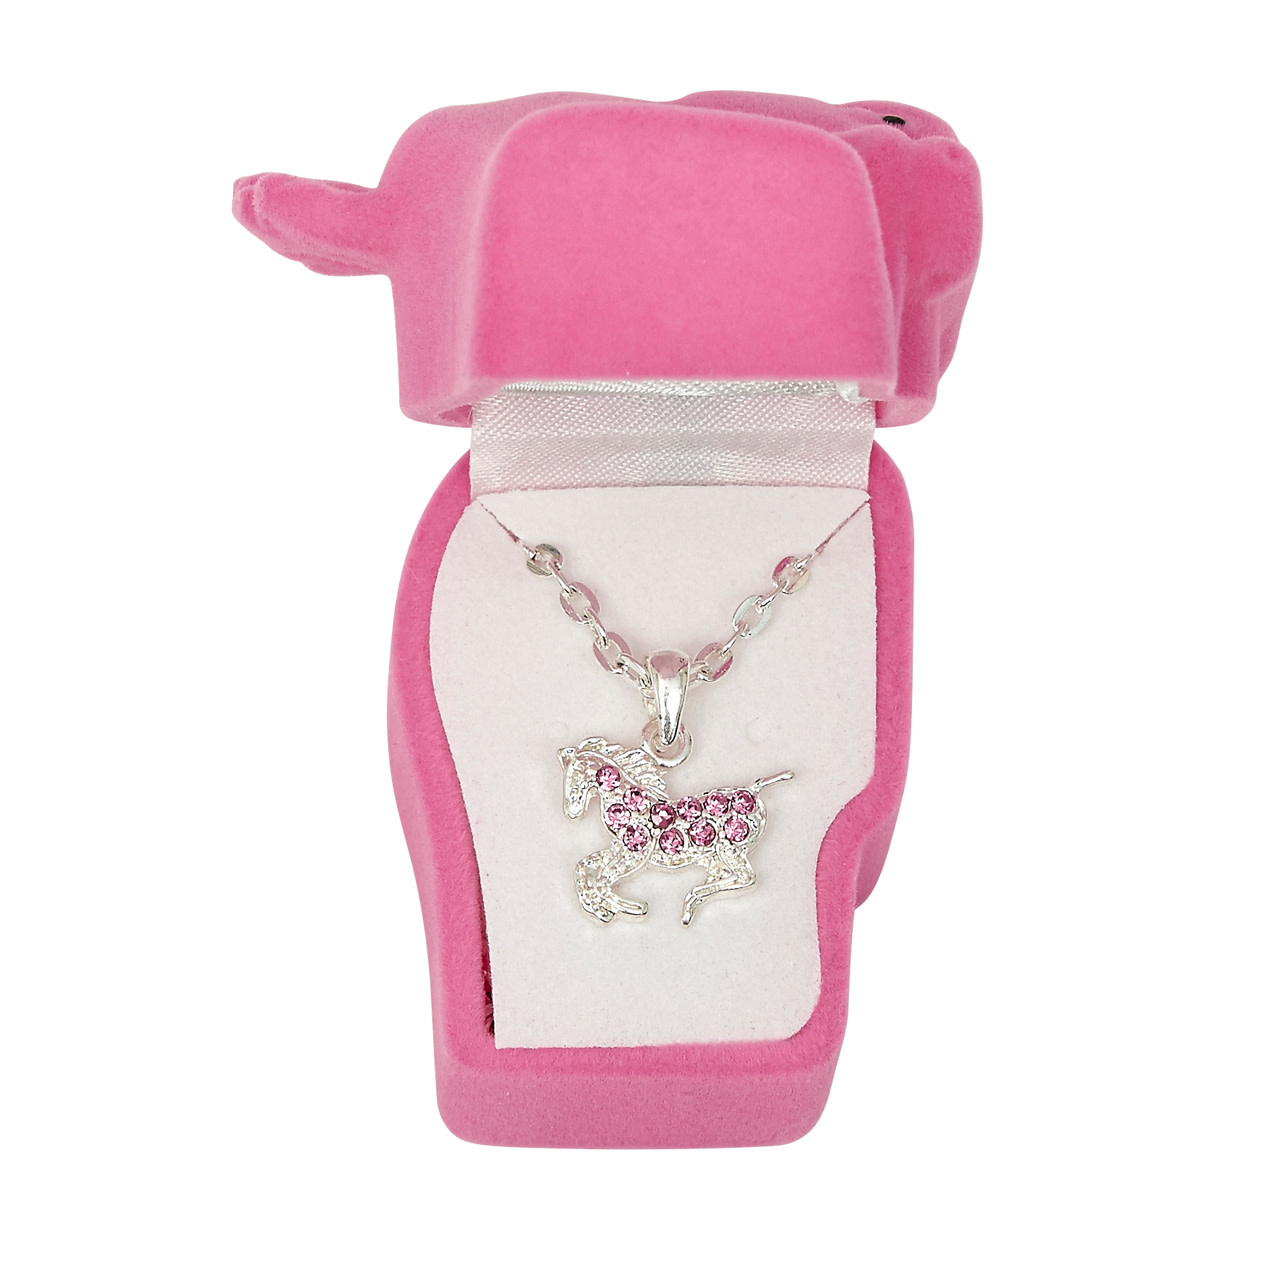 AWST AWST Horse Necklace, With Horsehead Gift Box